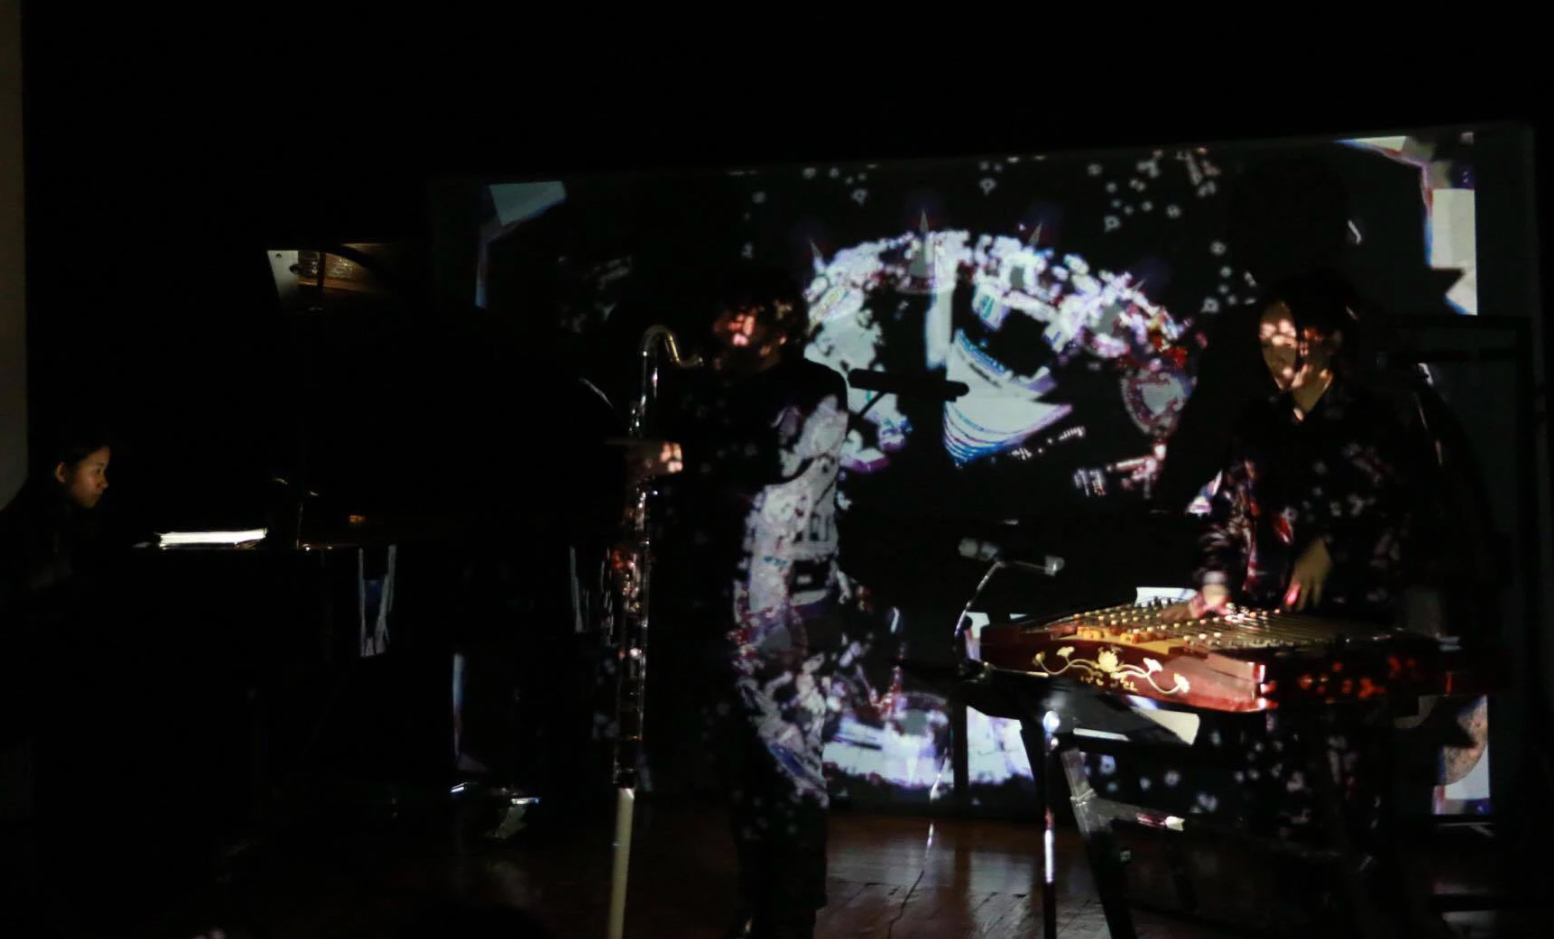 Music composed by Vasko Dukovski, live VJ by Mengtai Zhang, photo credit: Jerry Lin, presented at Mise_en Place, New York, 2017